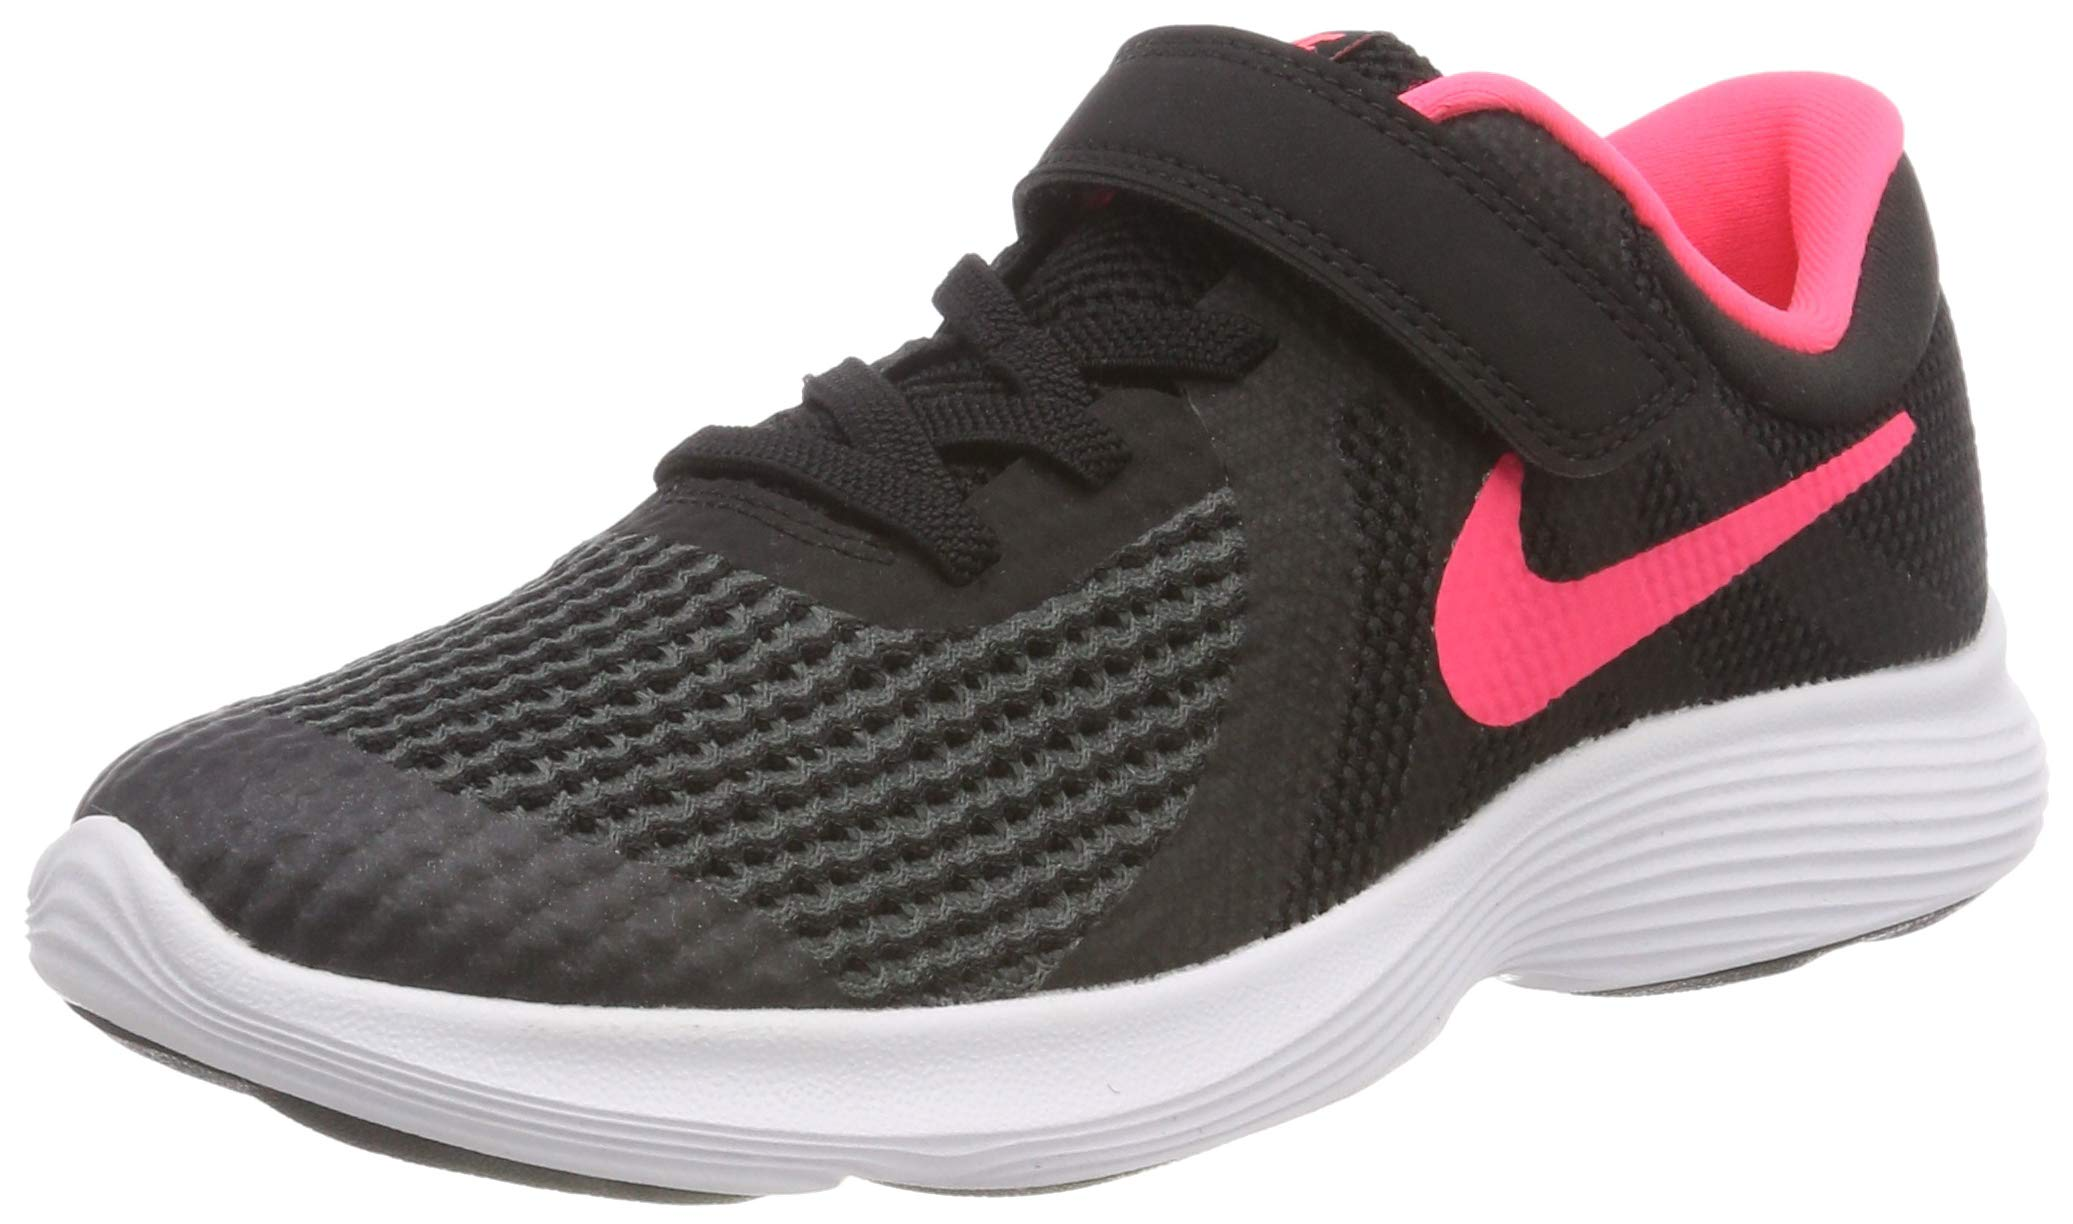 Nike Girls' Revolution 4 (PSV) Running Shoe, Black/Racer Pink - White, 12C Regular US Little Kid by Nike (Image #1)